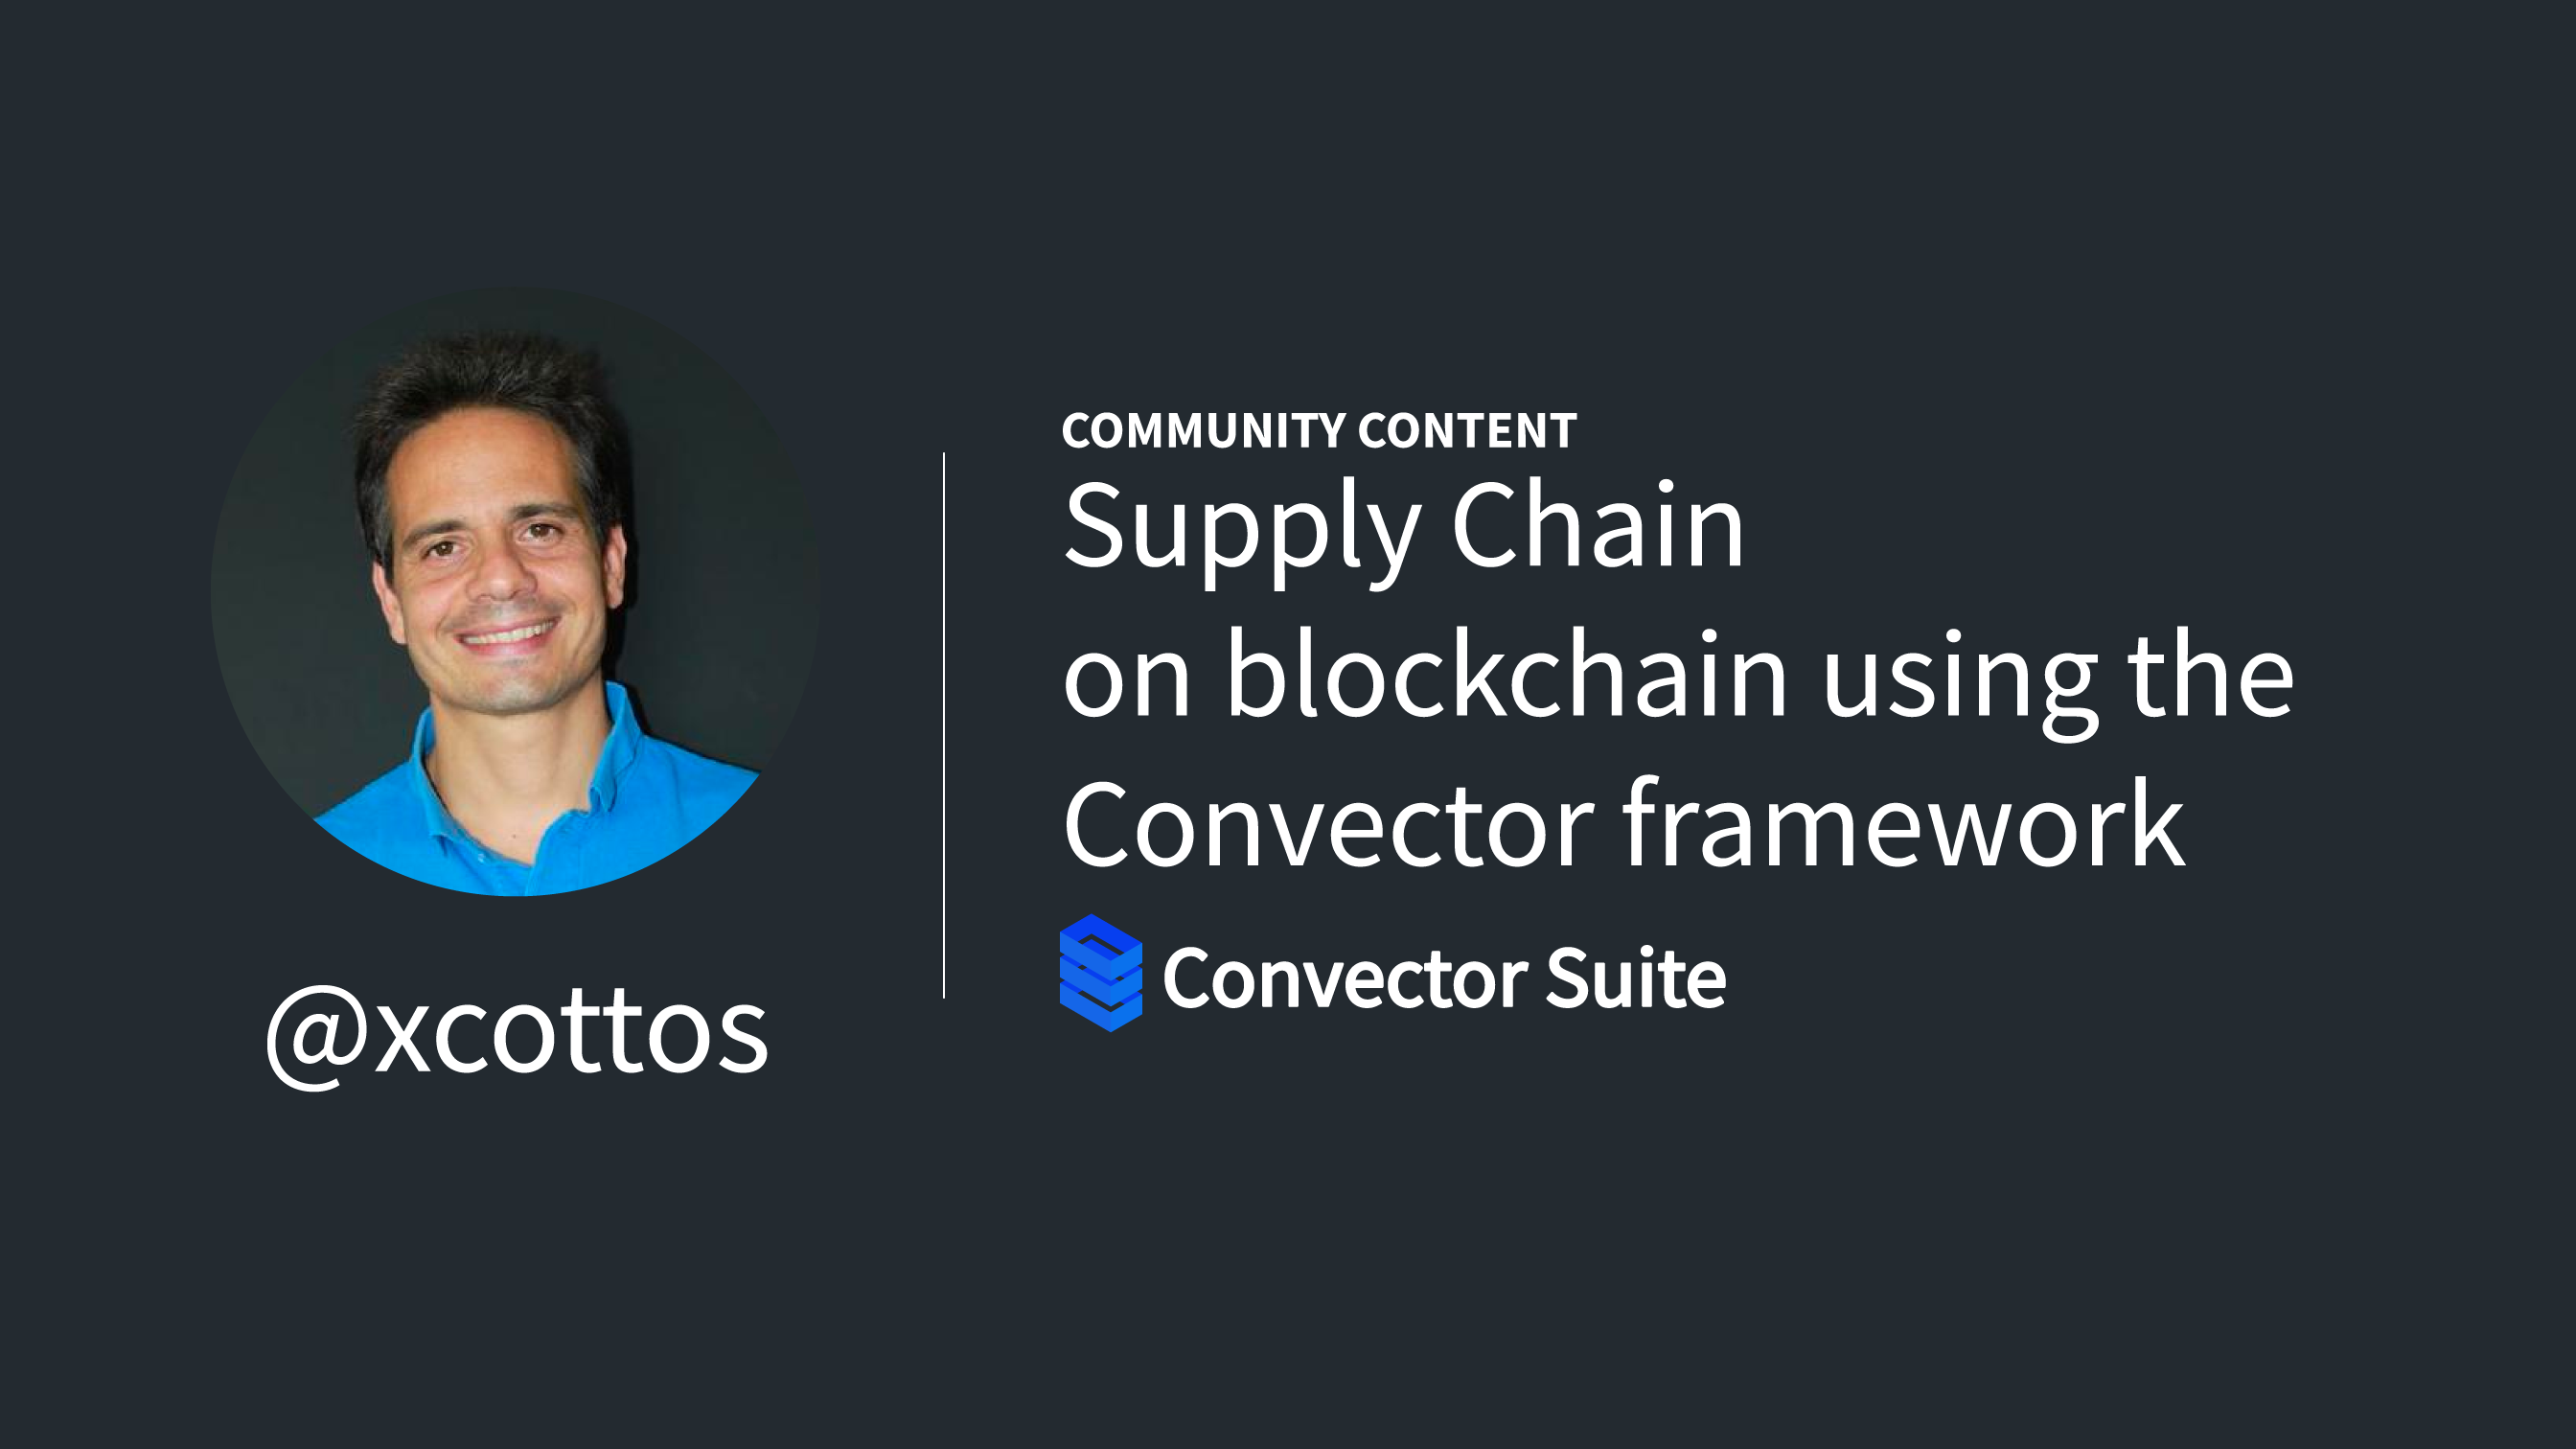 Supply Chain on blockchain using the Convector framework